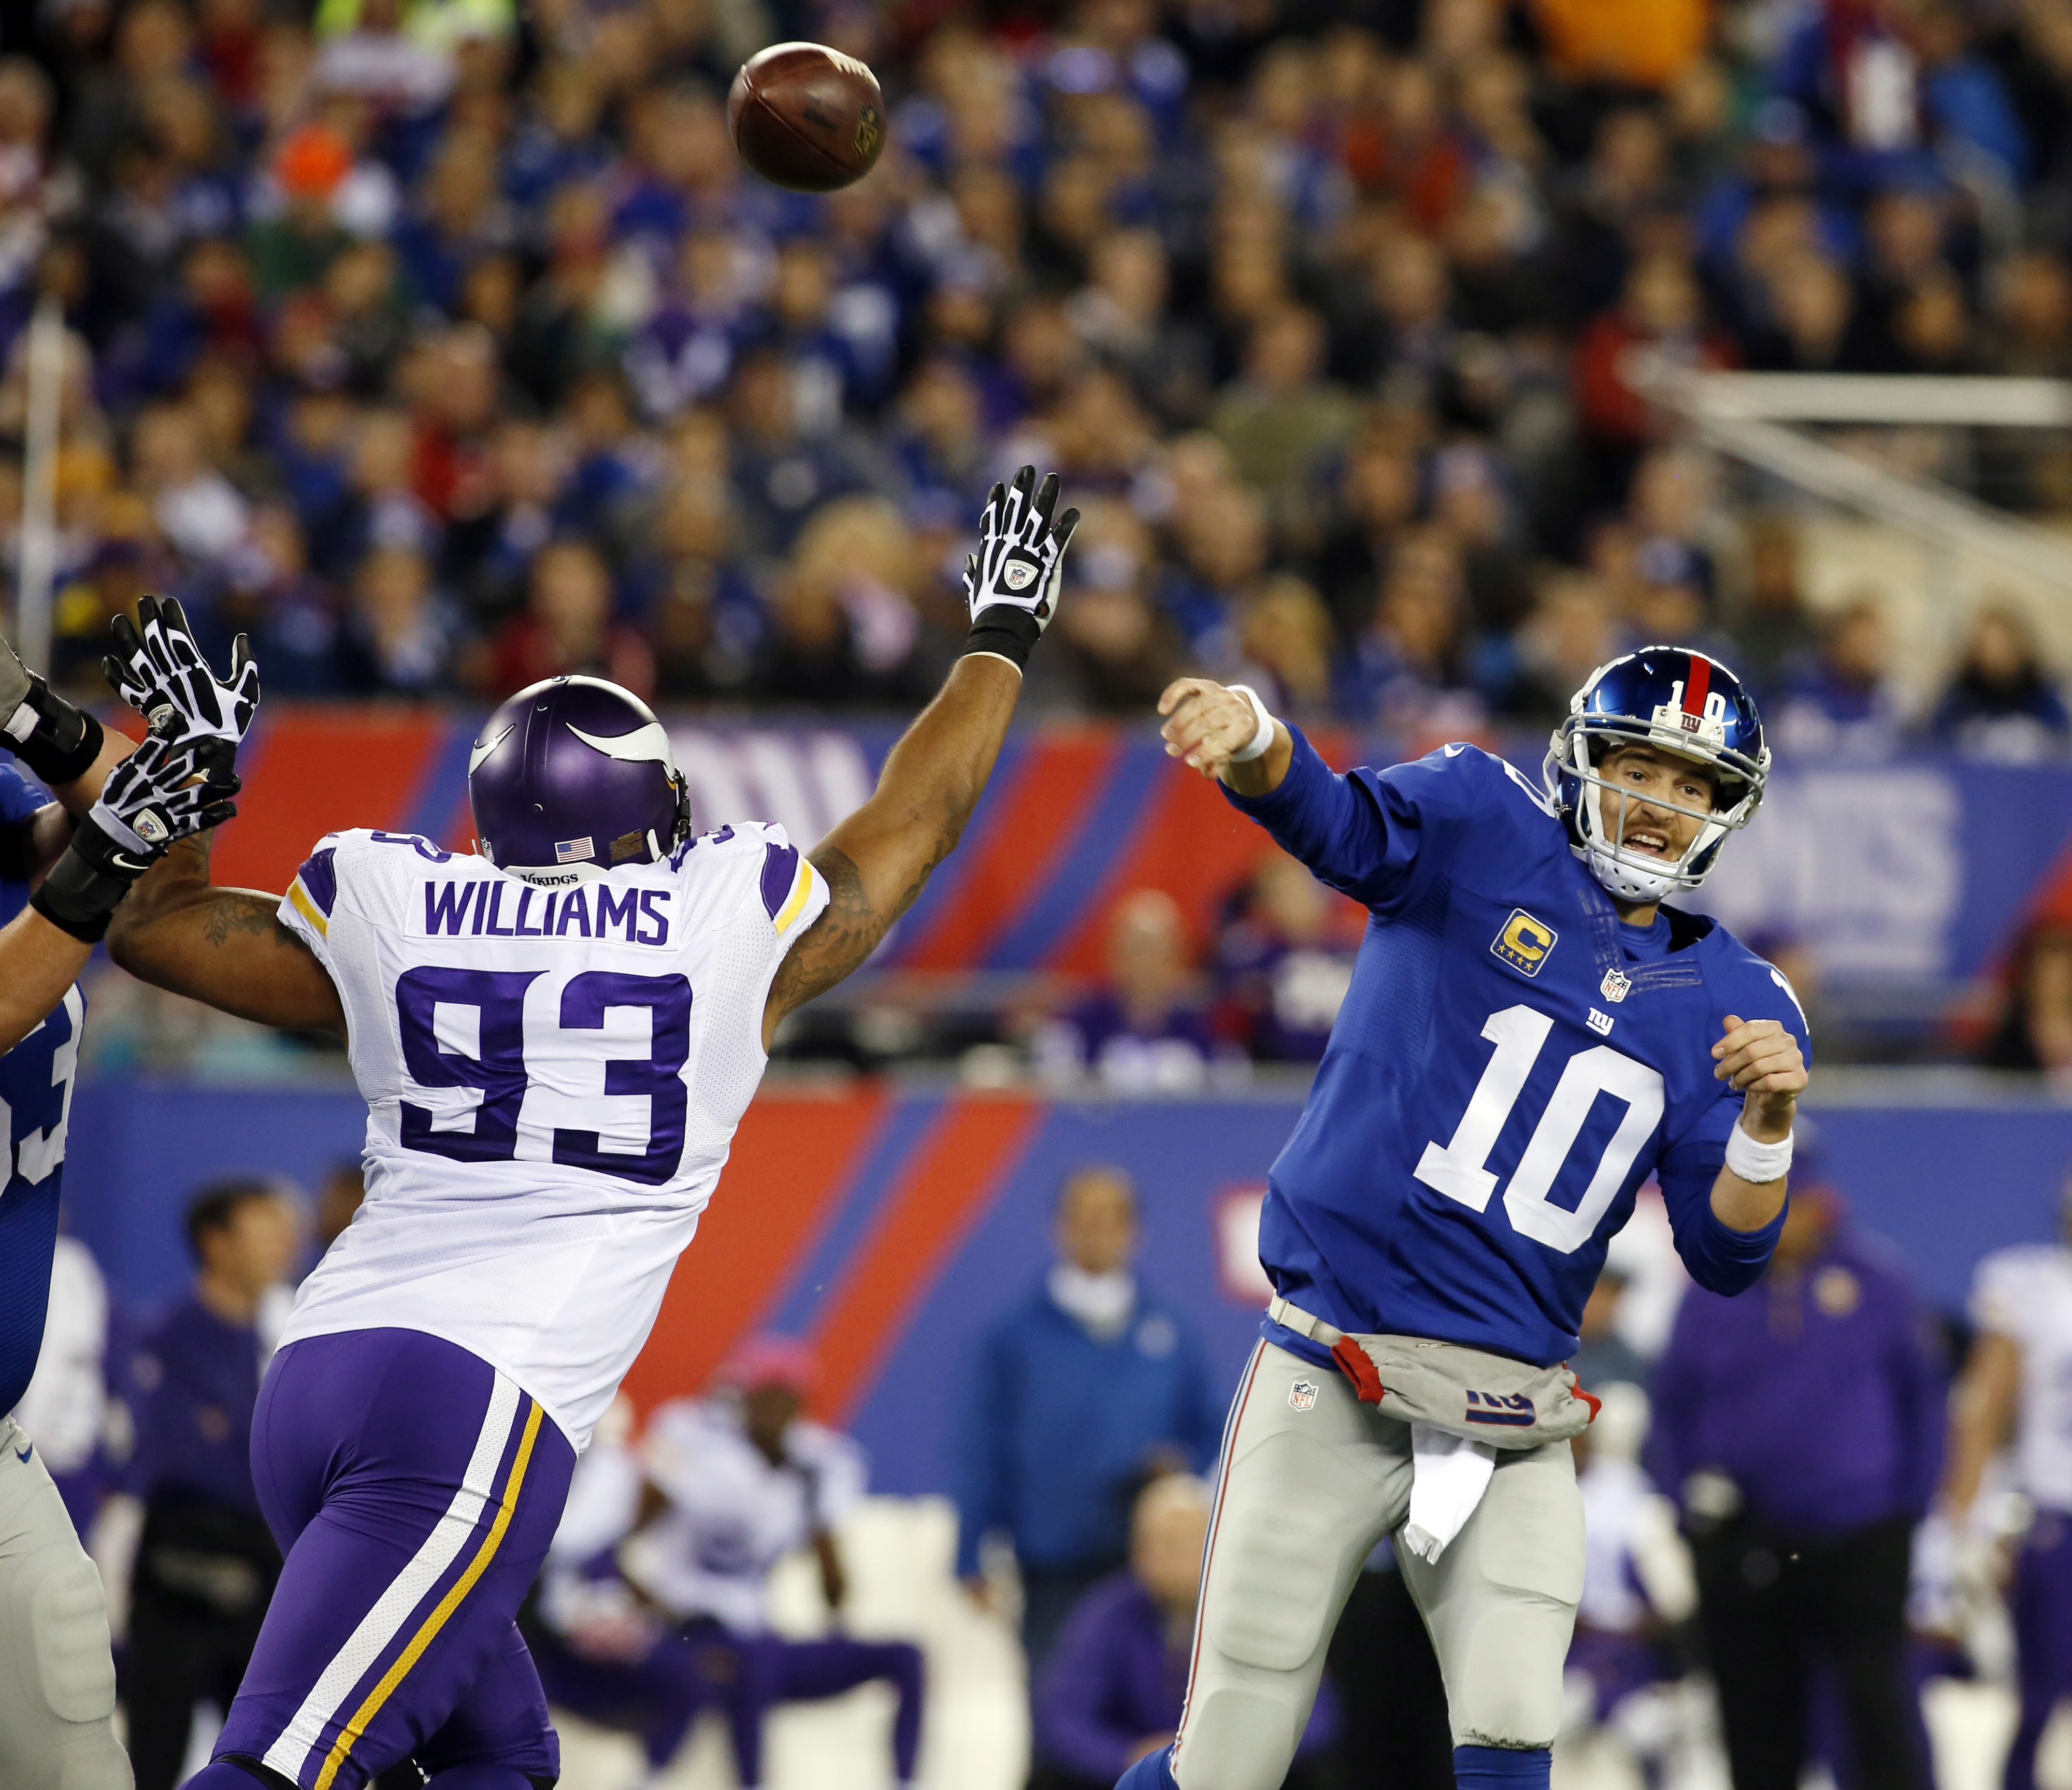 Kevin Williams is in New York meeting with the Giants